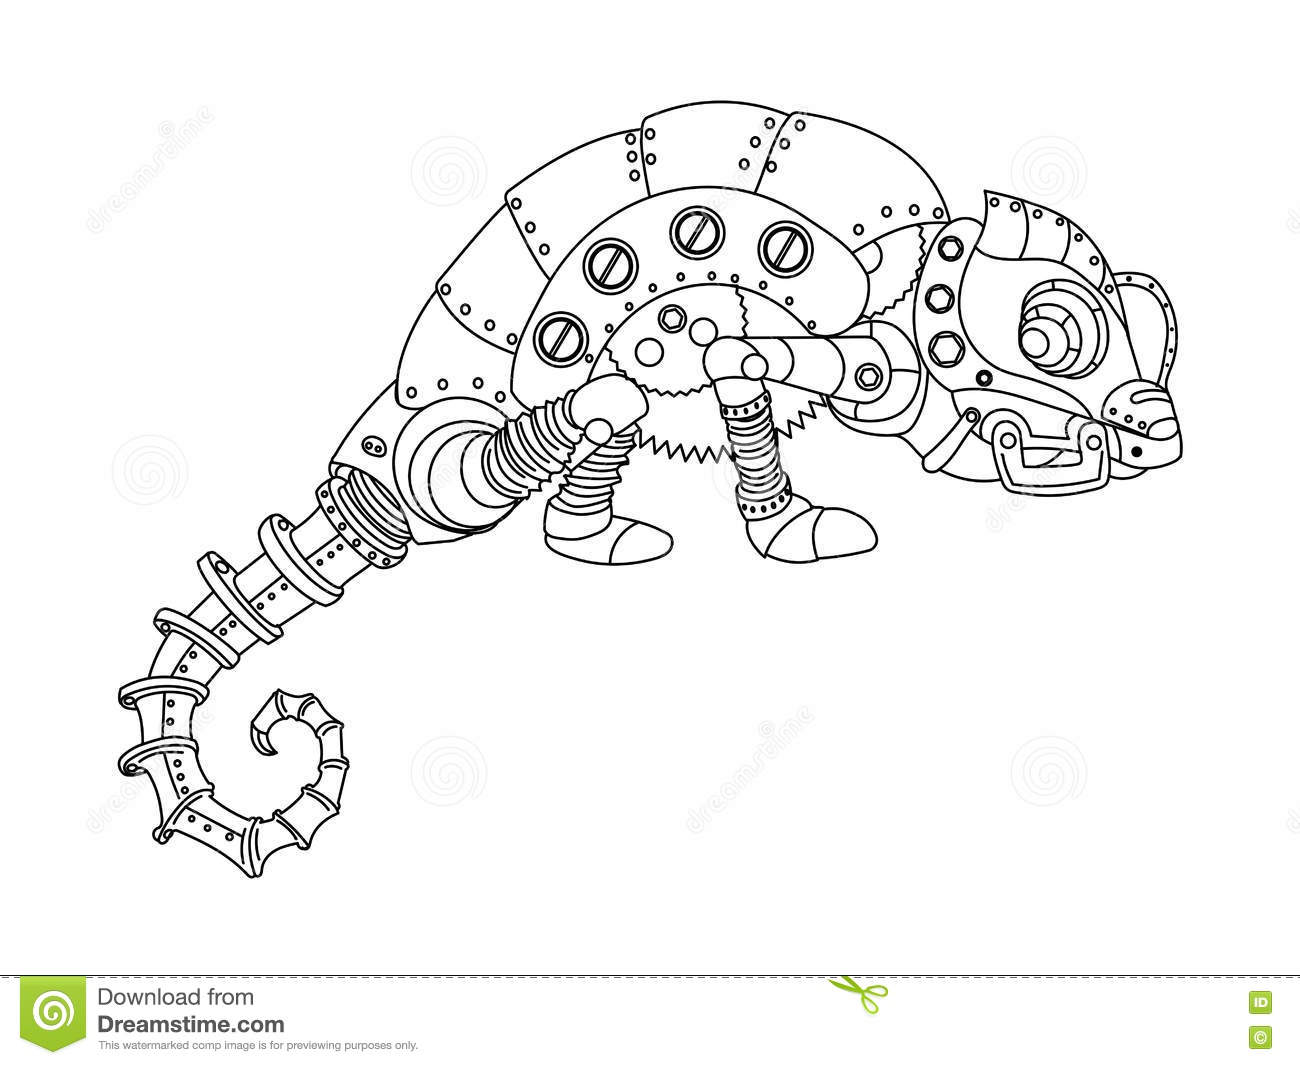 chameleon cartoons  illustrations  u0026 vector stock images